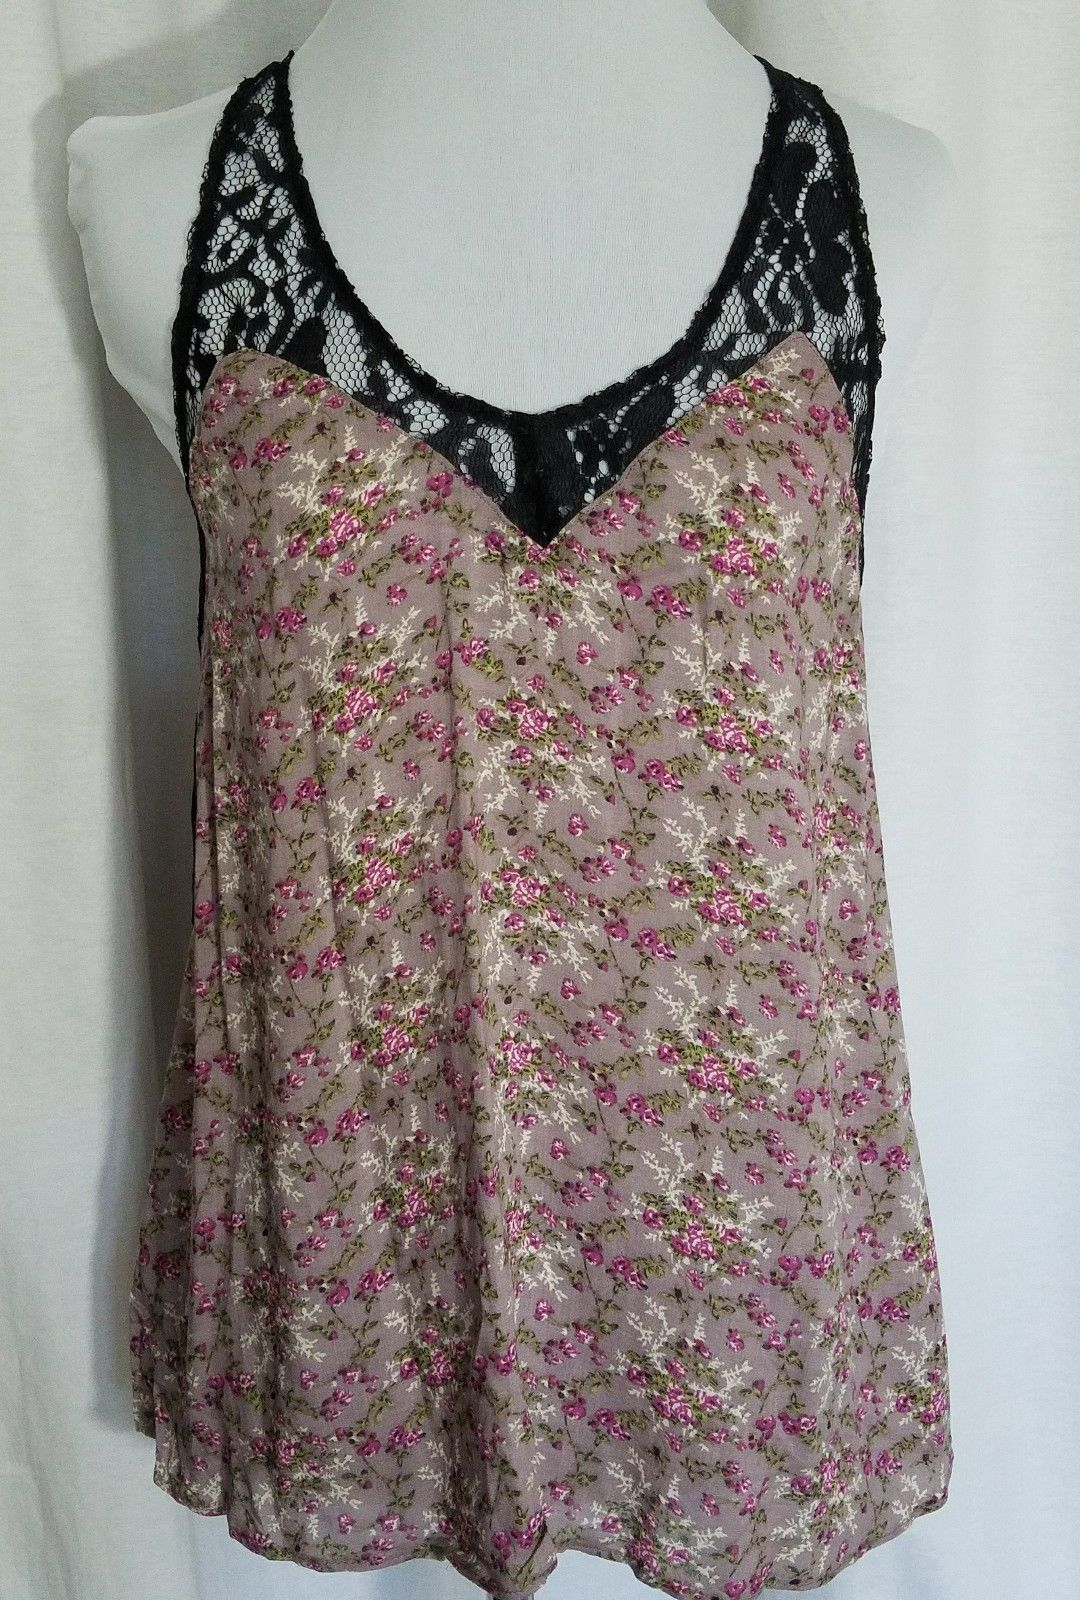 Iris Basic Pink Purple Floral Cami Top T Back Black Lace Trim Size M